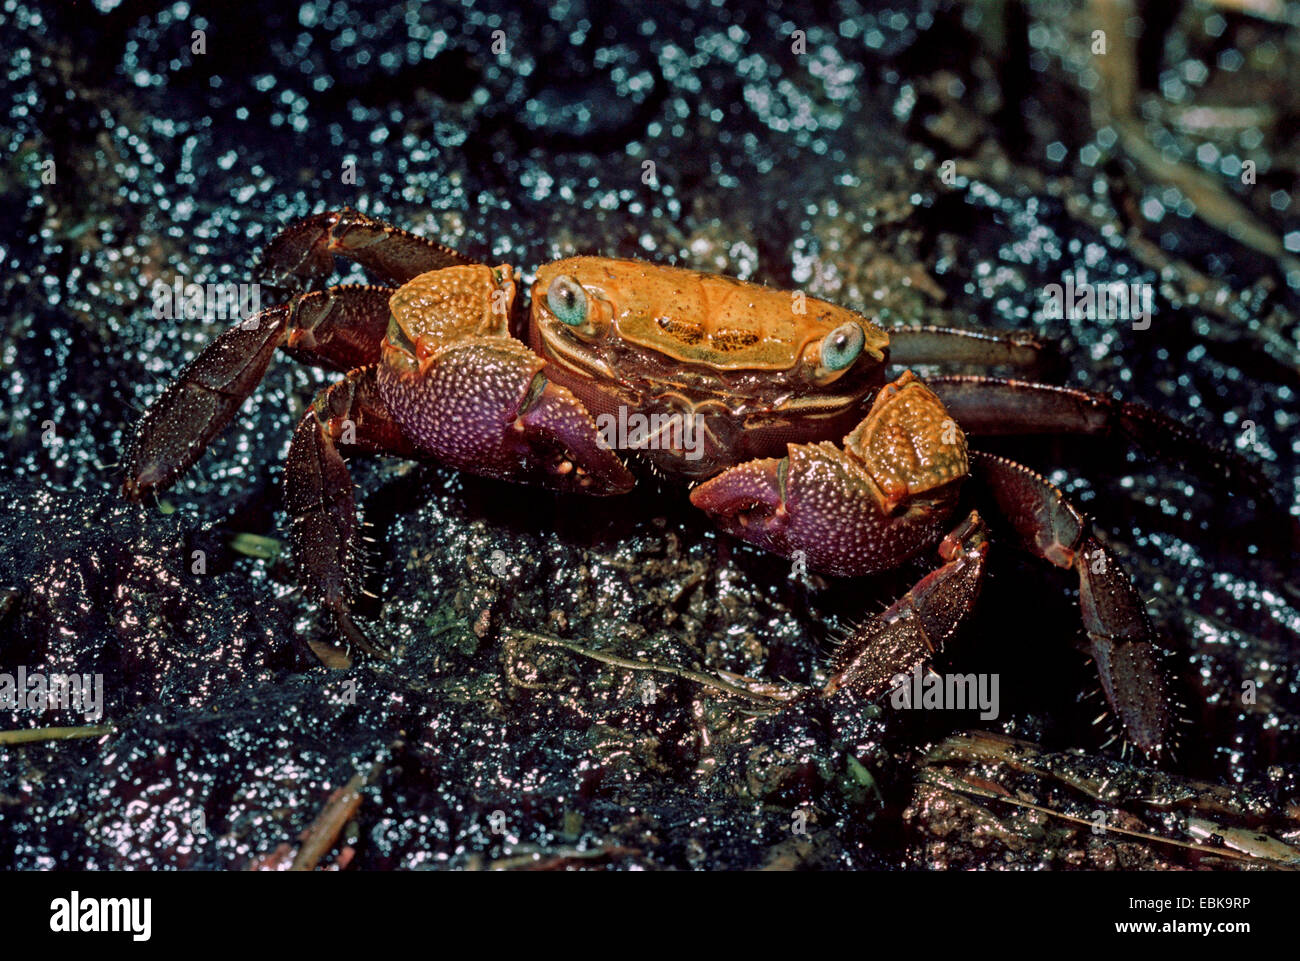 Sesannid crab (Bresedium brevipes), on the beach - Stock Image